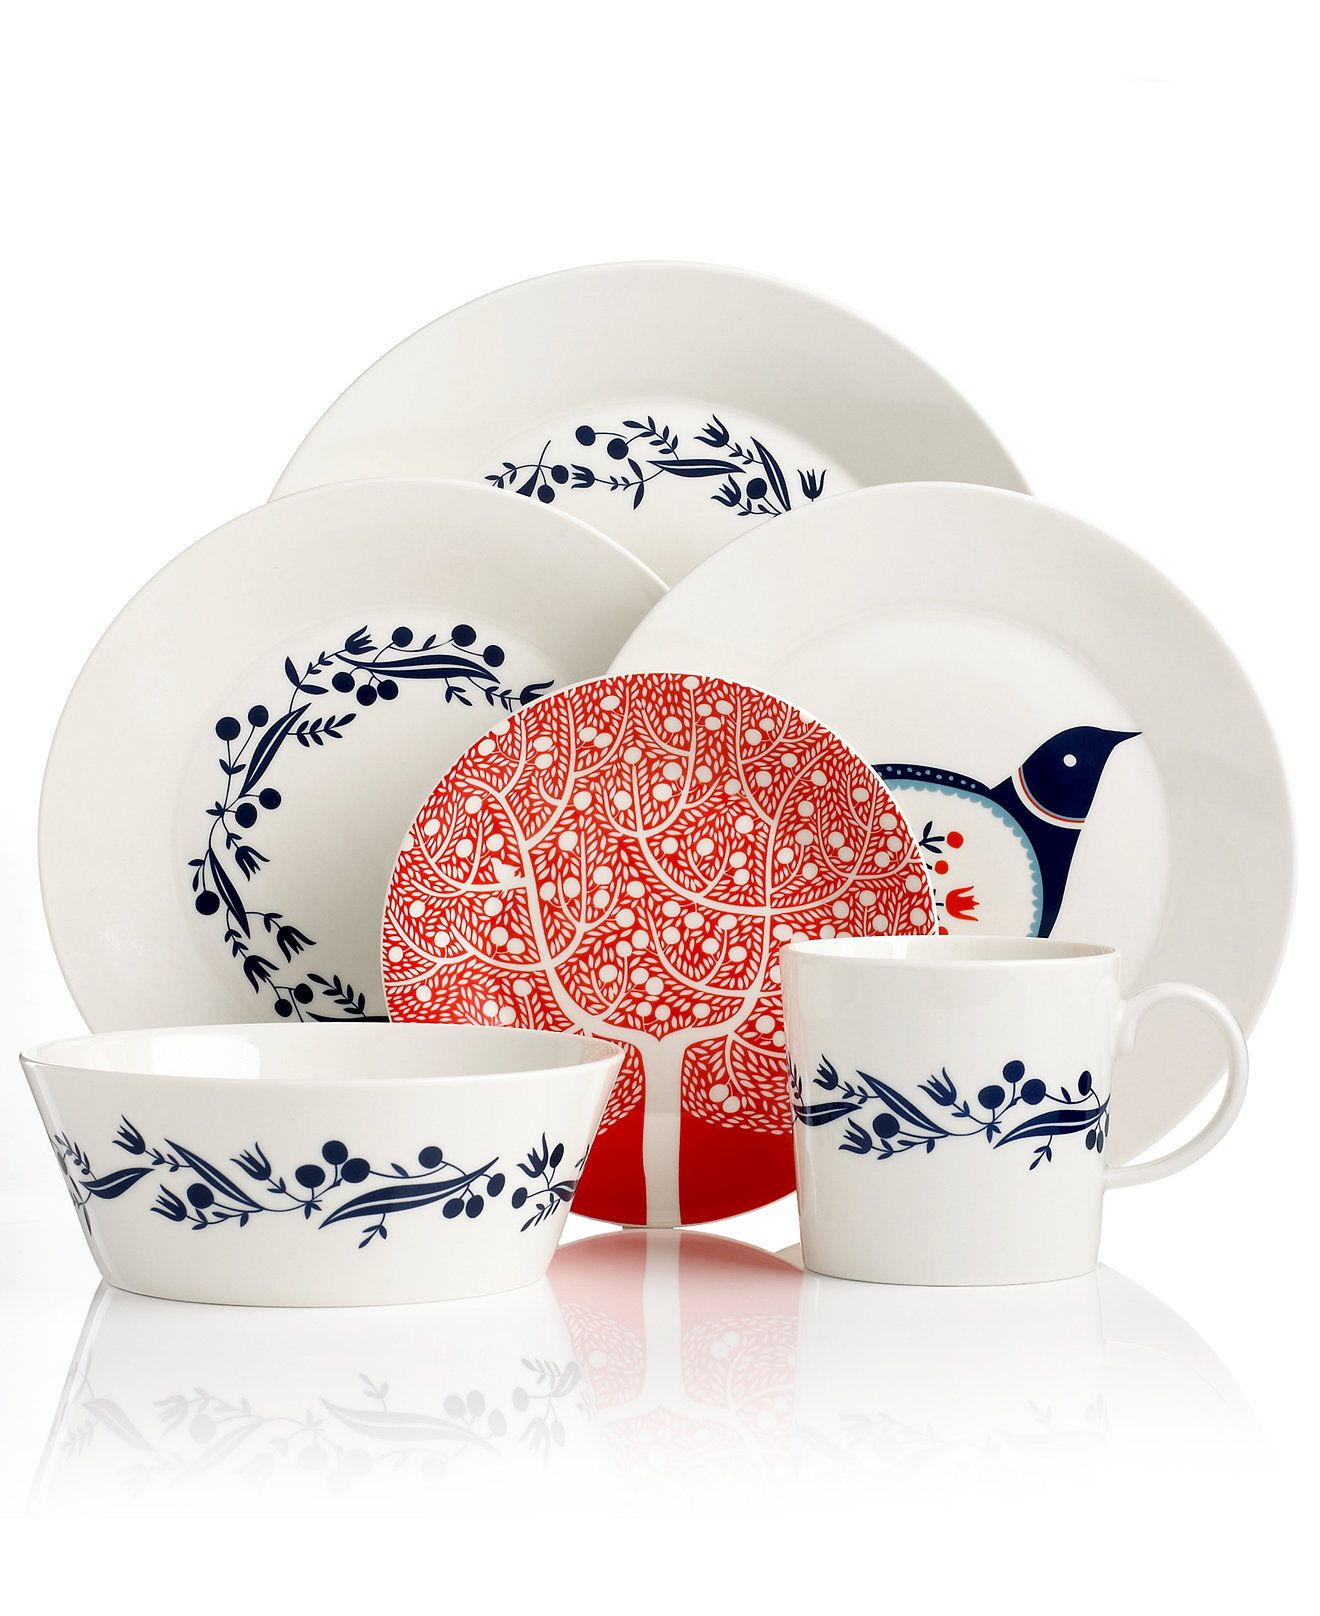 Royal Doulton Dinnerware Fable Garland Collection - Casual Dinnerware - Dining \u0026 Entertaining - Macy\u0027s  sc 1 st  Pinterest & Royal Doulton Dinnerware Fable Garland Collection - Casual ...